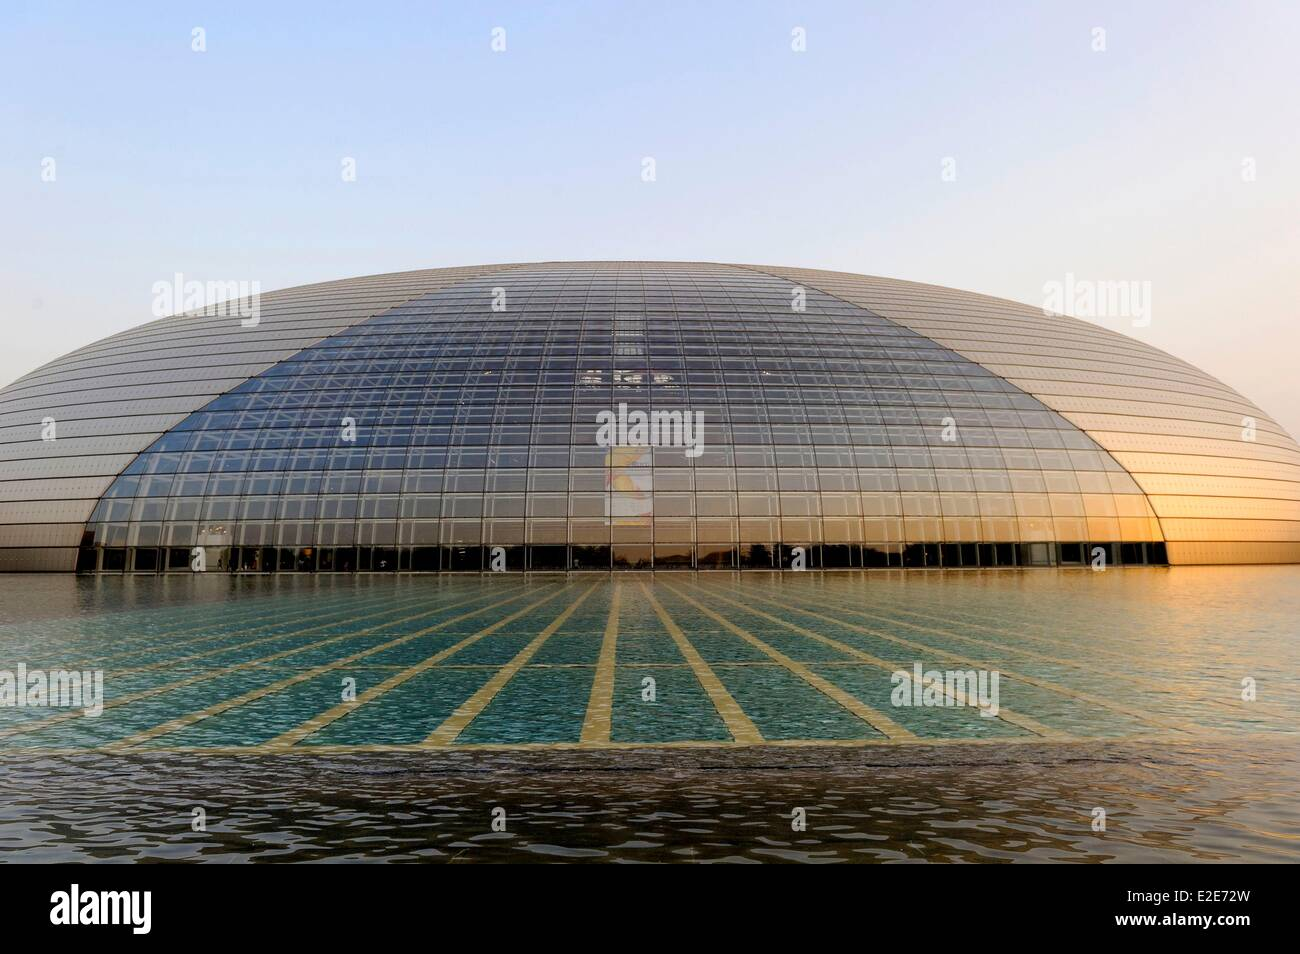 China beijing new opera house near tian an men square by for Beijing opera house architect